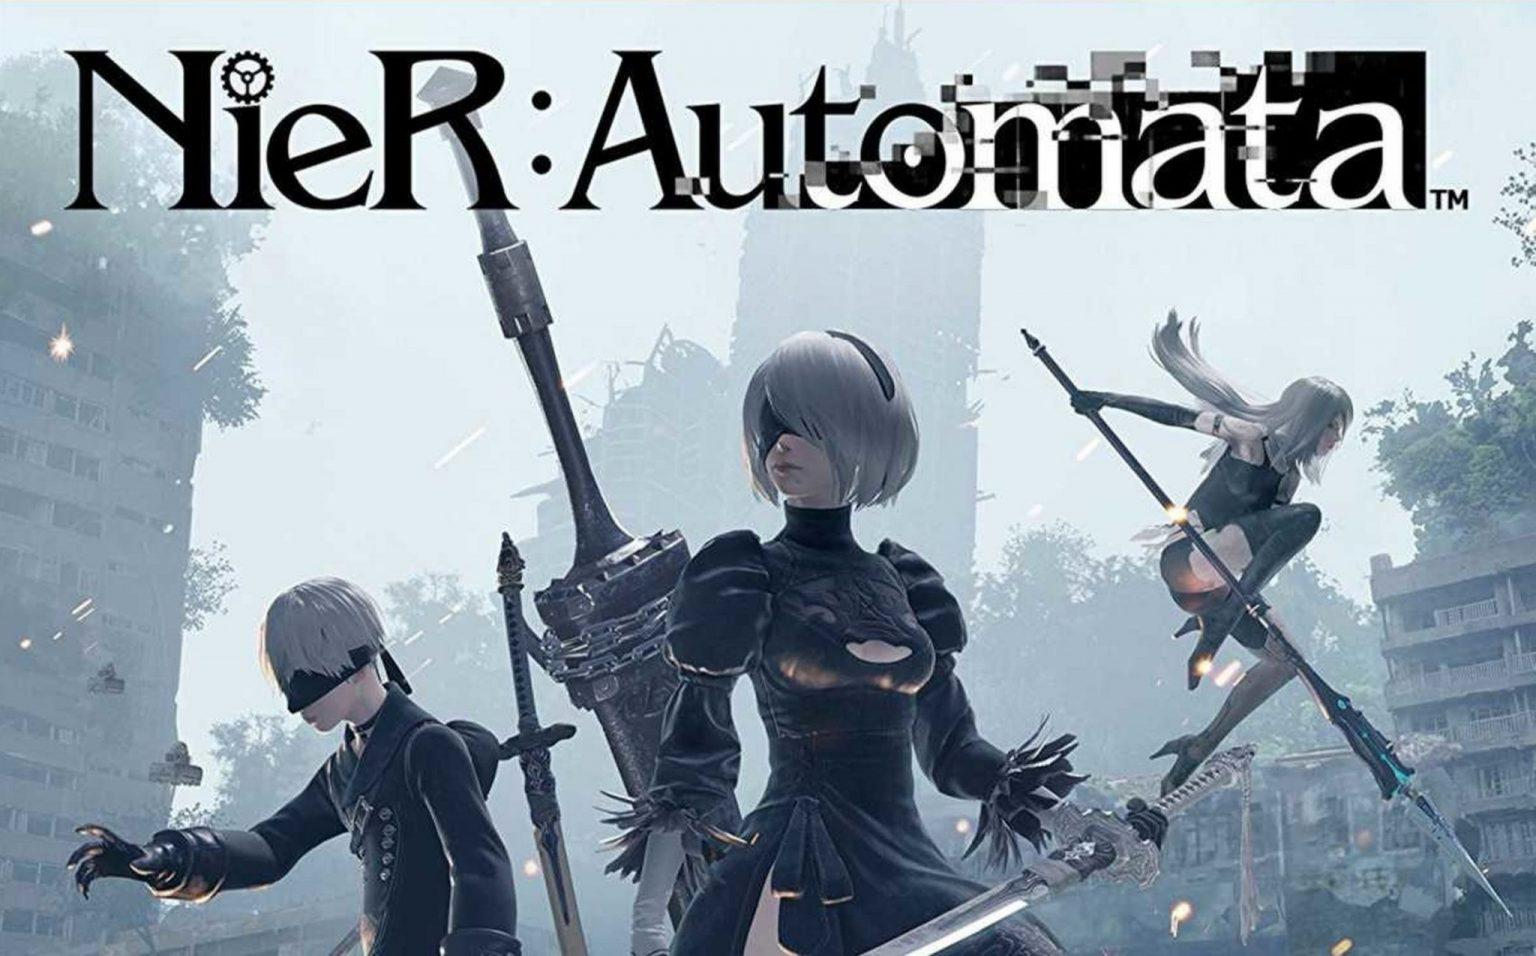 NIER AUTOMATA NINTENDO SWITCH VERSION FULL GAME SETUP FREE DOWNLOAD